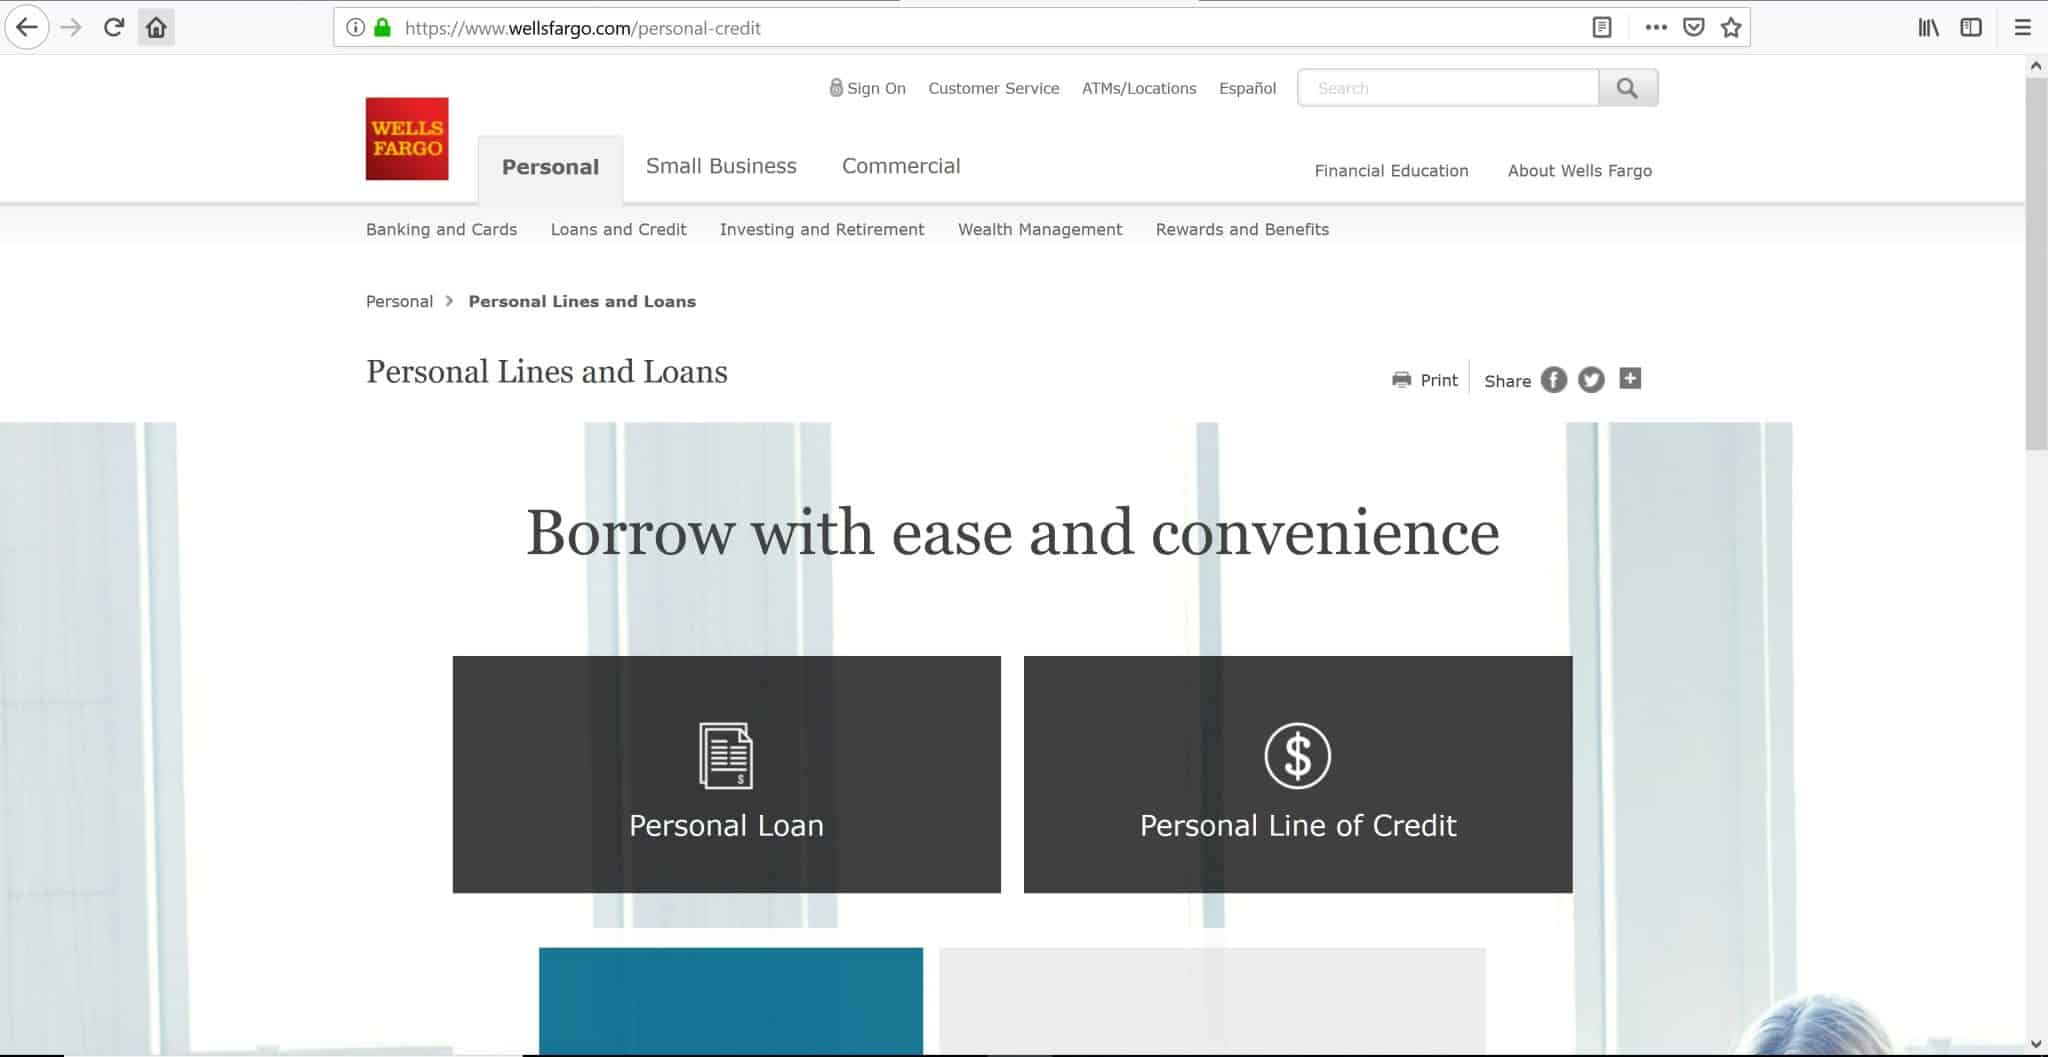 Wells Fargo Personal Loan Review Rates Options And Public